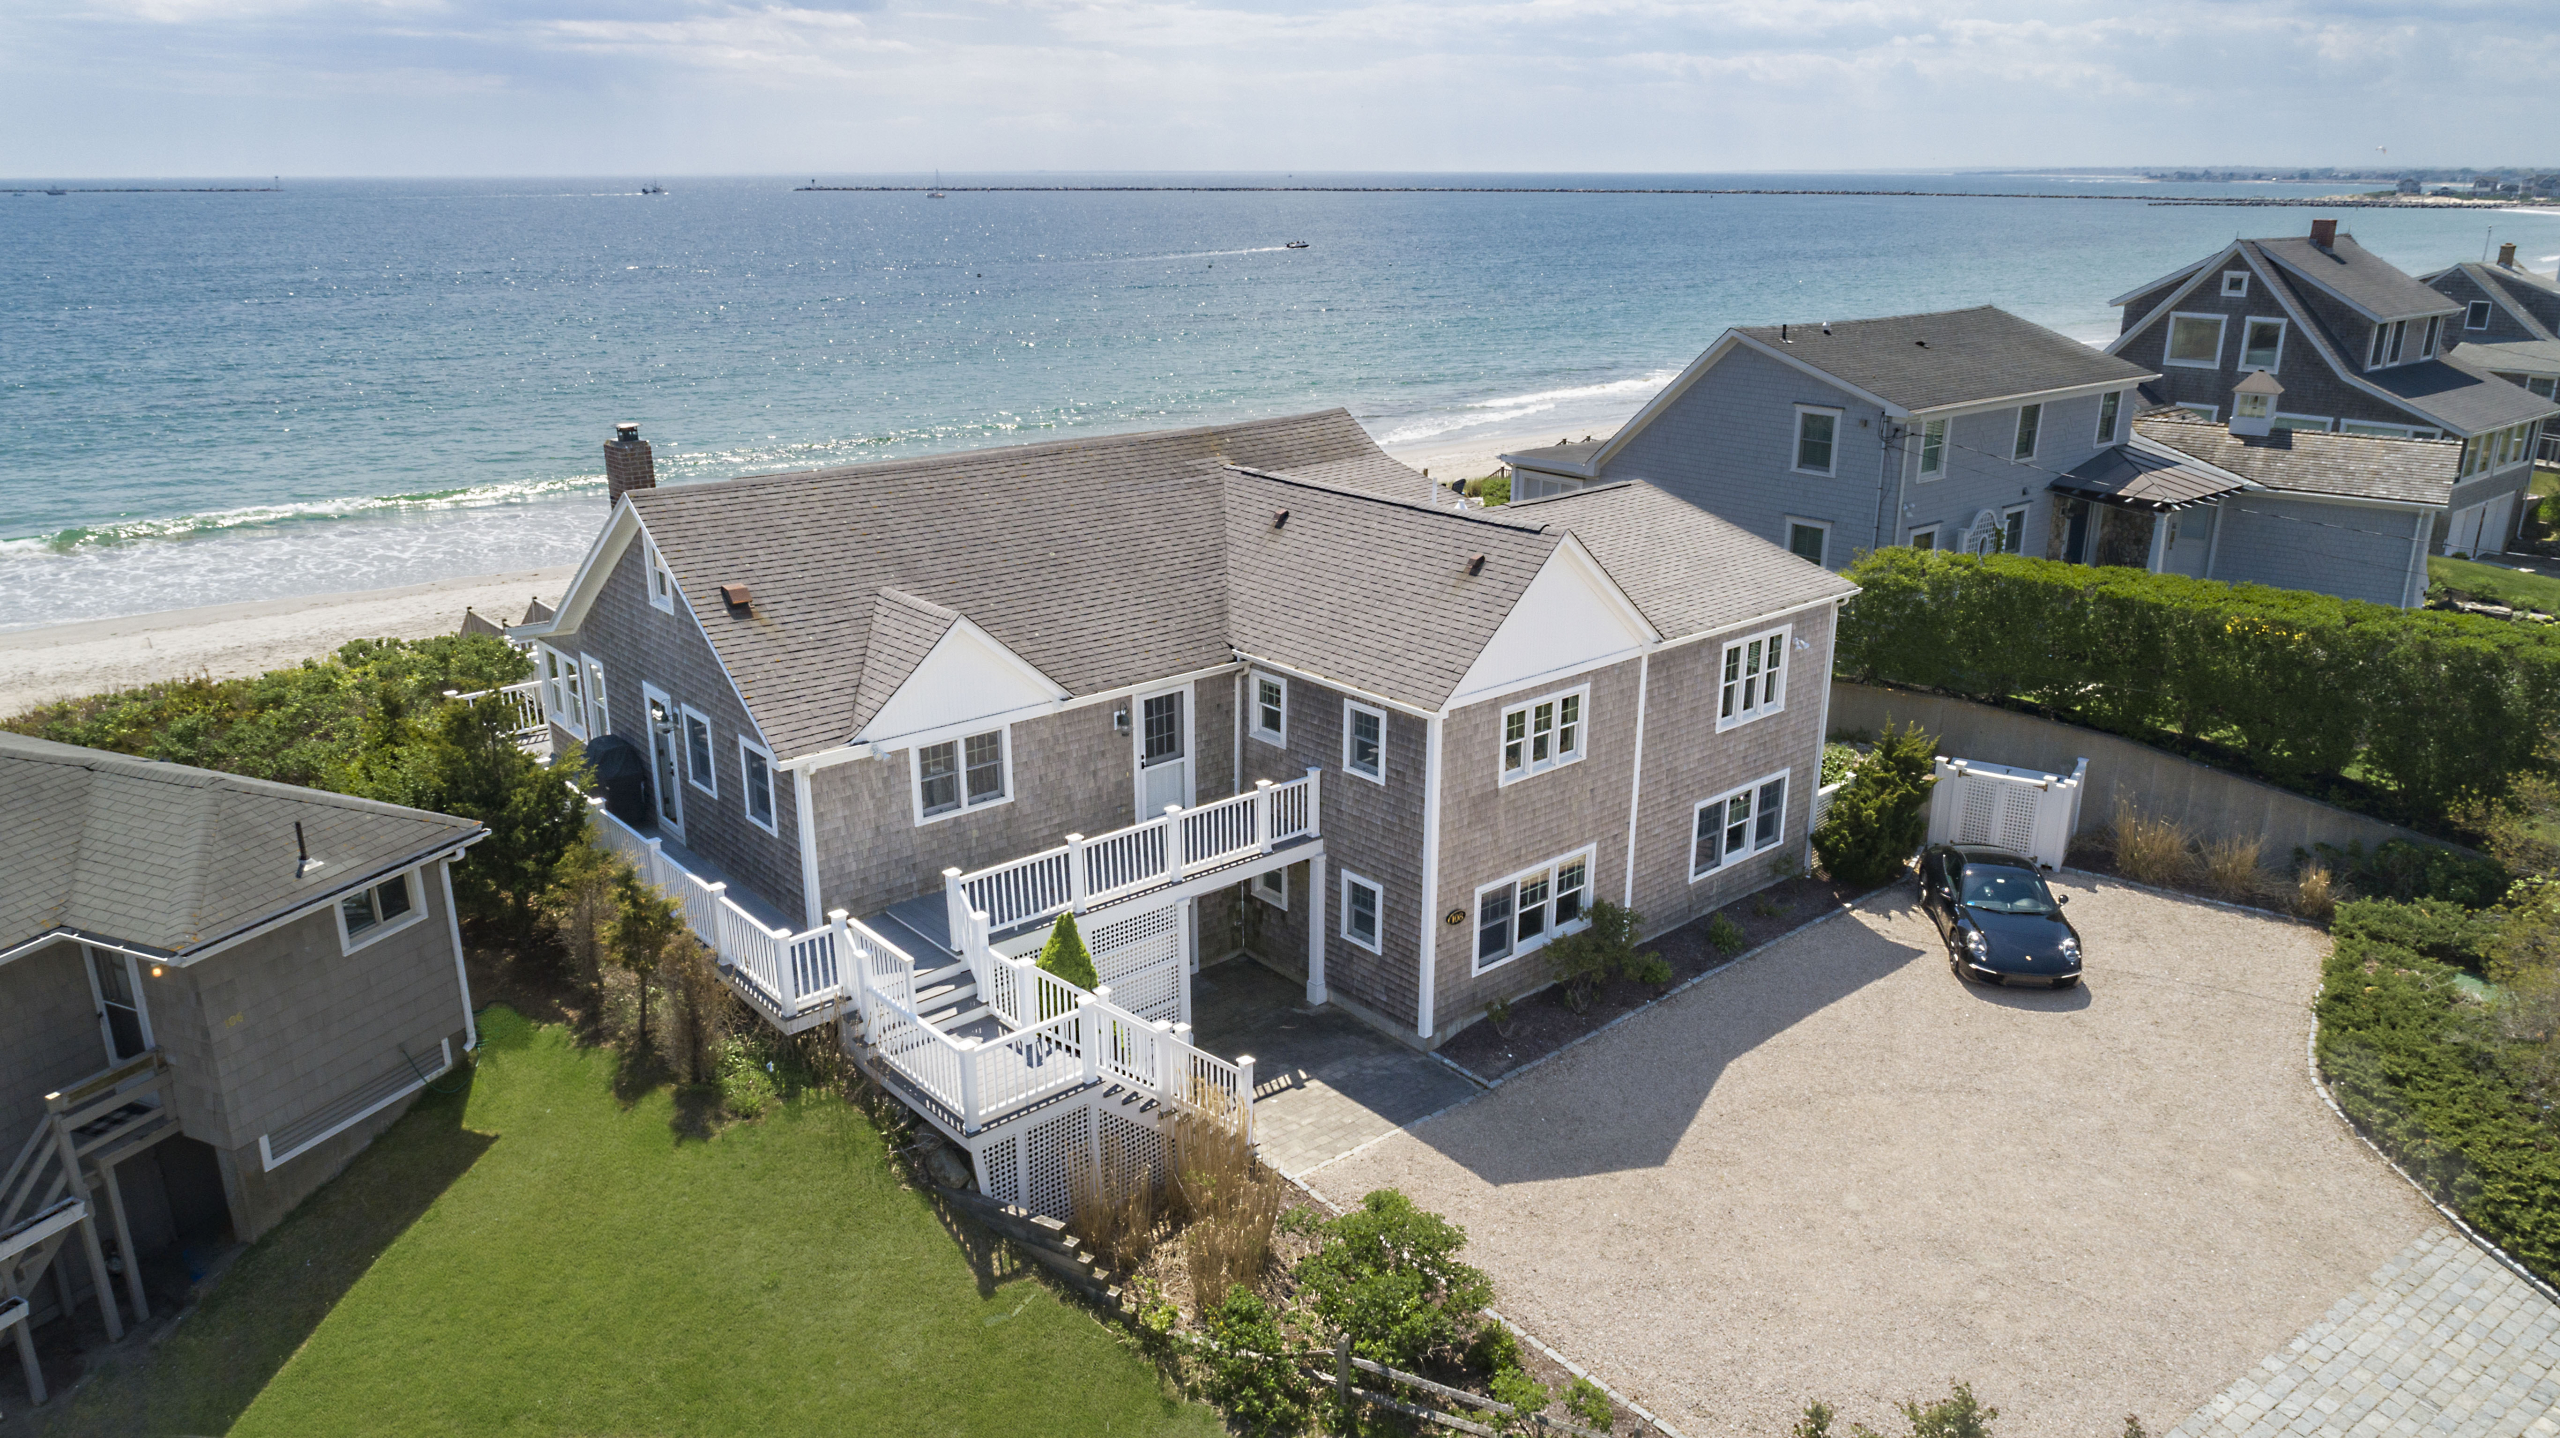 BEACHFRONT HOME IN NARRAGANSETT SELLS FOR $3.776M,  MARKING HIGHEST PRICE PER SQUARE FOOT SINCE 2015*